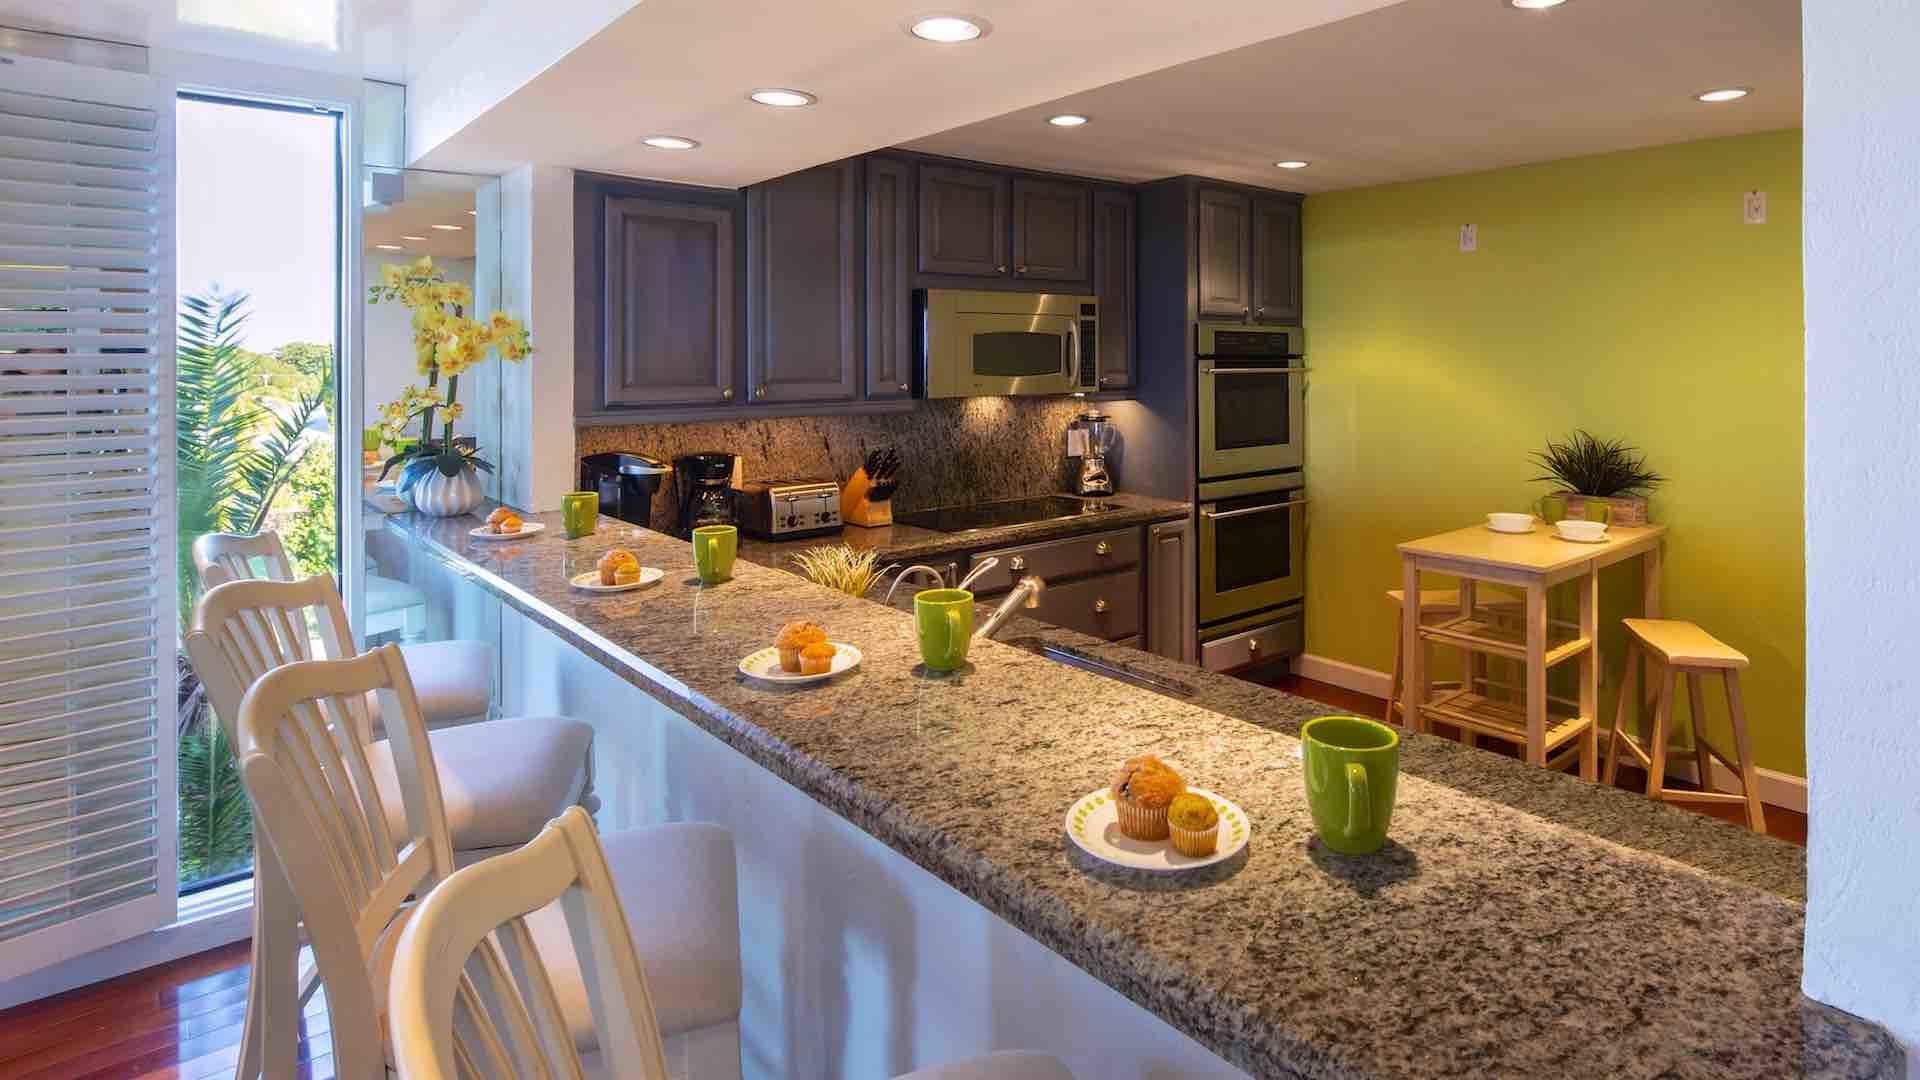 The kitchen is fully equipped with stainless steel appliances...